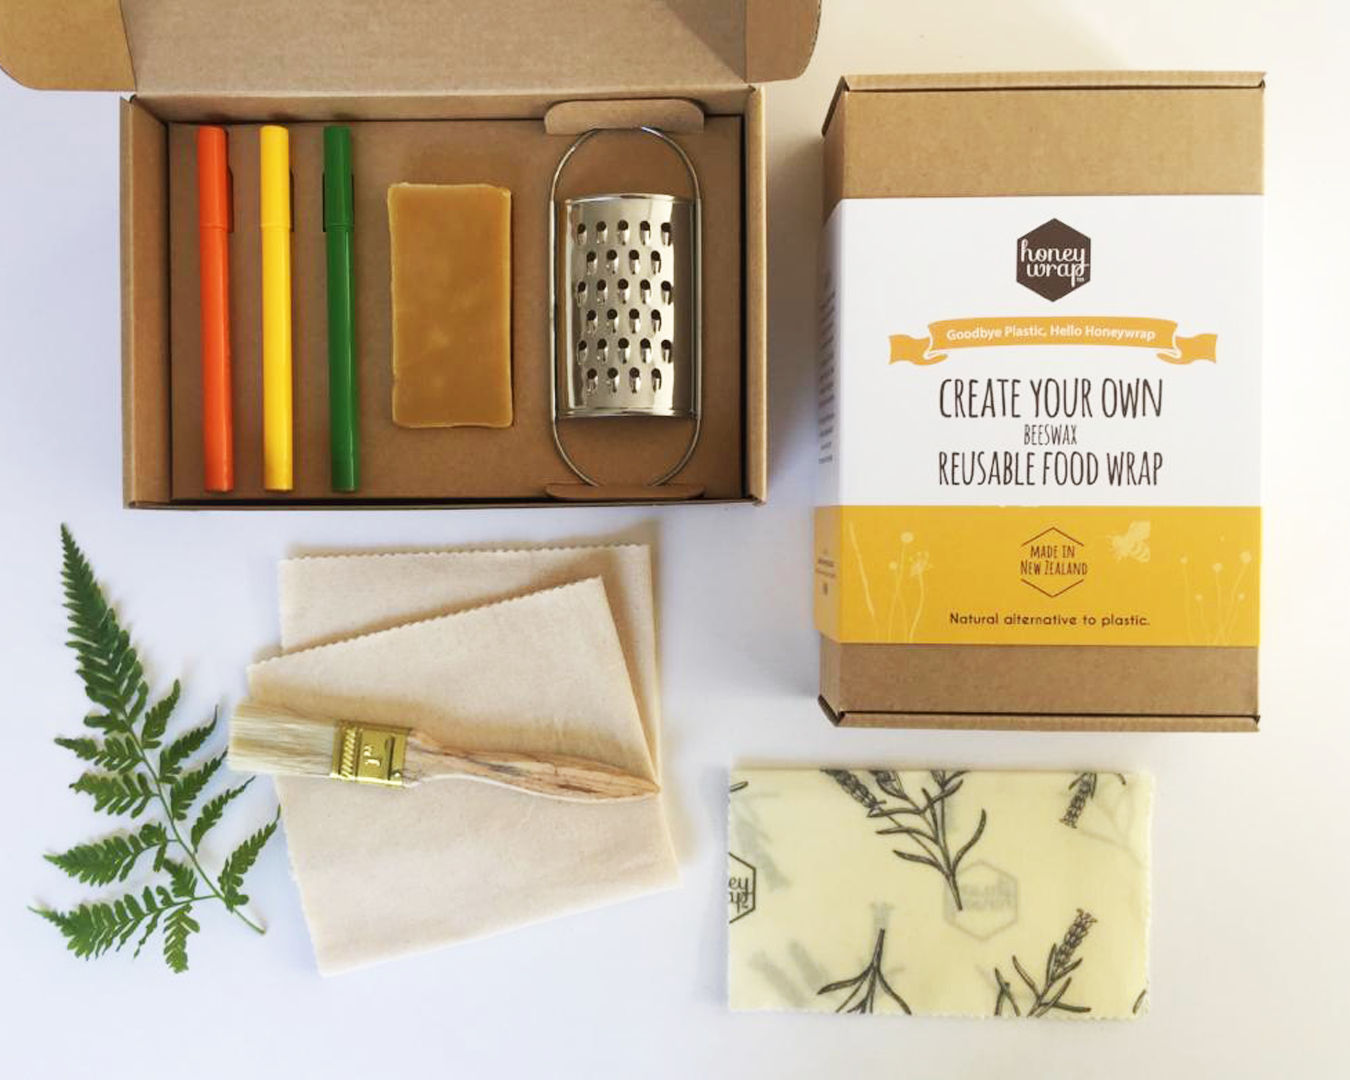 A wooden box with a mini grater, a bar of beeswax, folded pieces of material, felt tip pens, and a decorative fern leaf.